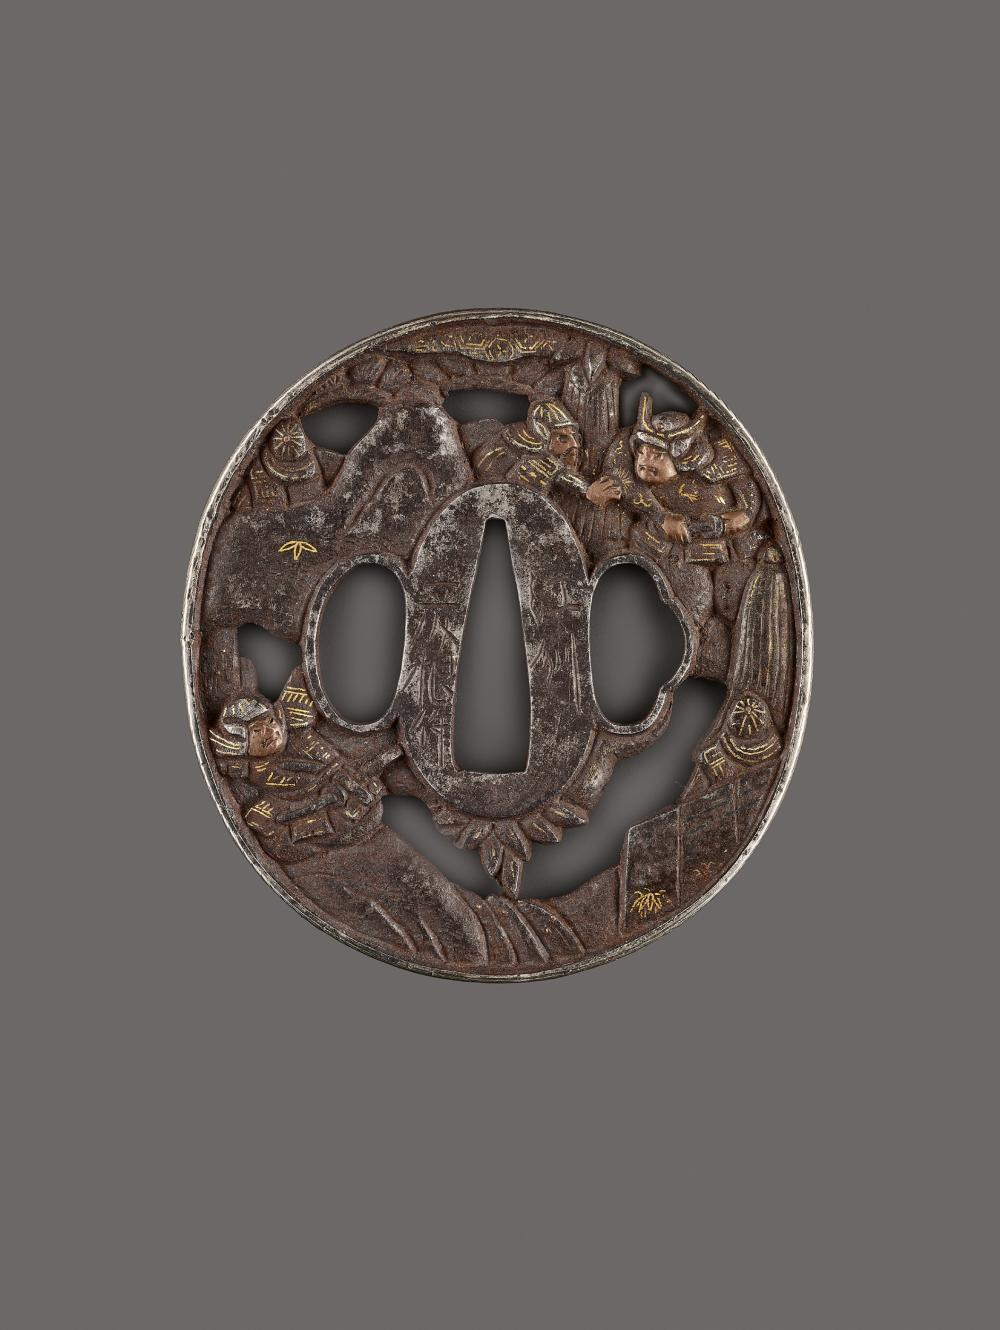 AN IRON, COPPER AND GOLD TSUBA DEPICTING SAMURAI WARRIORS AMID ROCKS BY GENKO